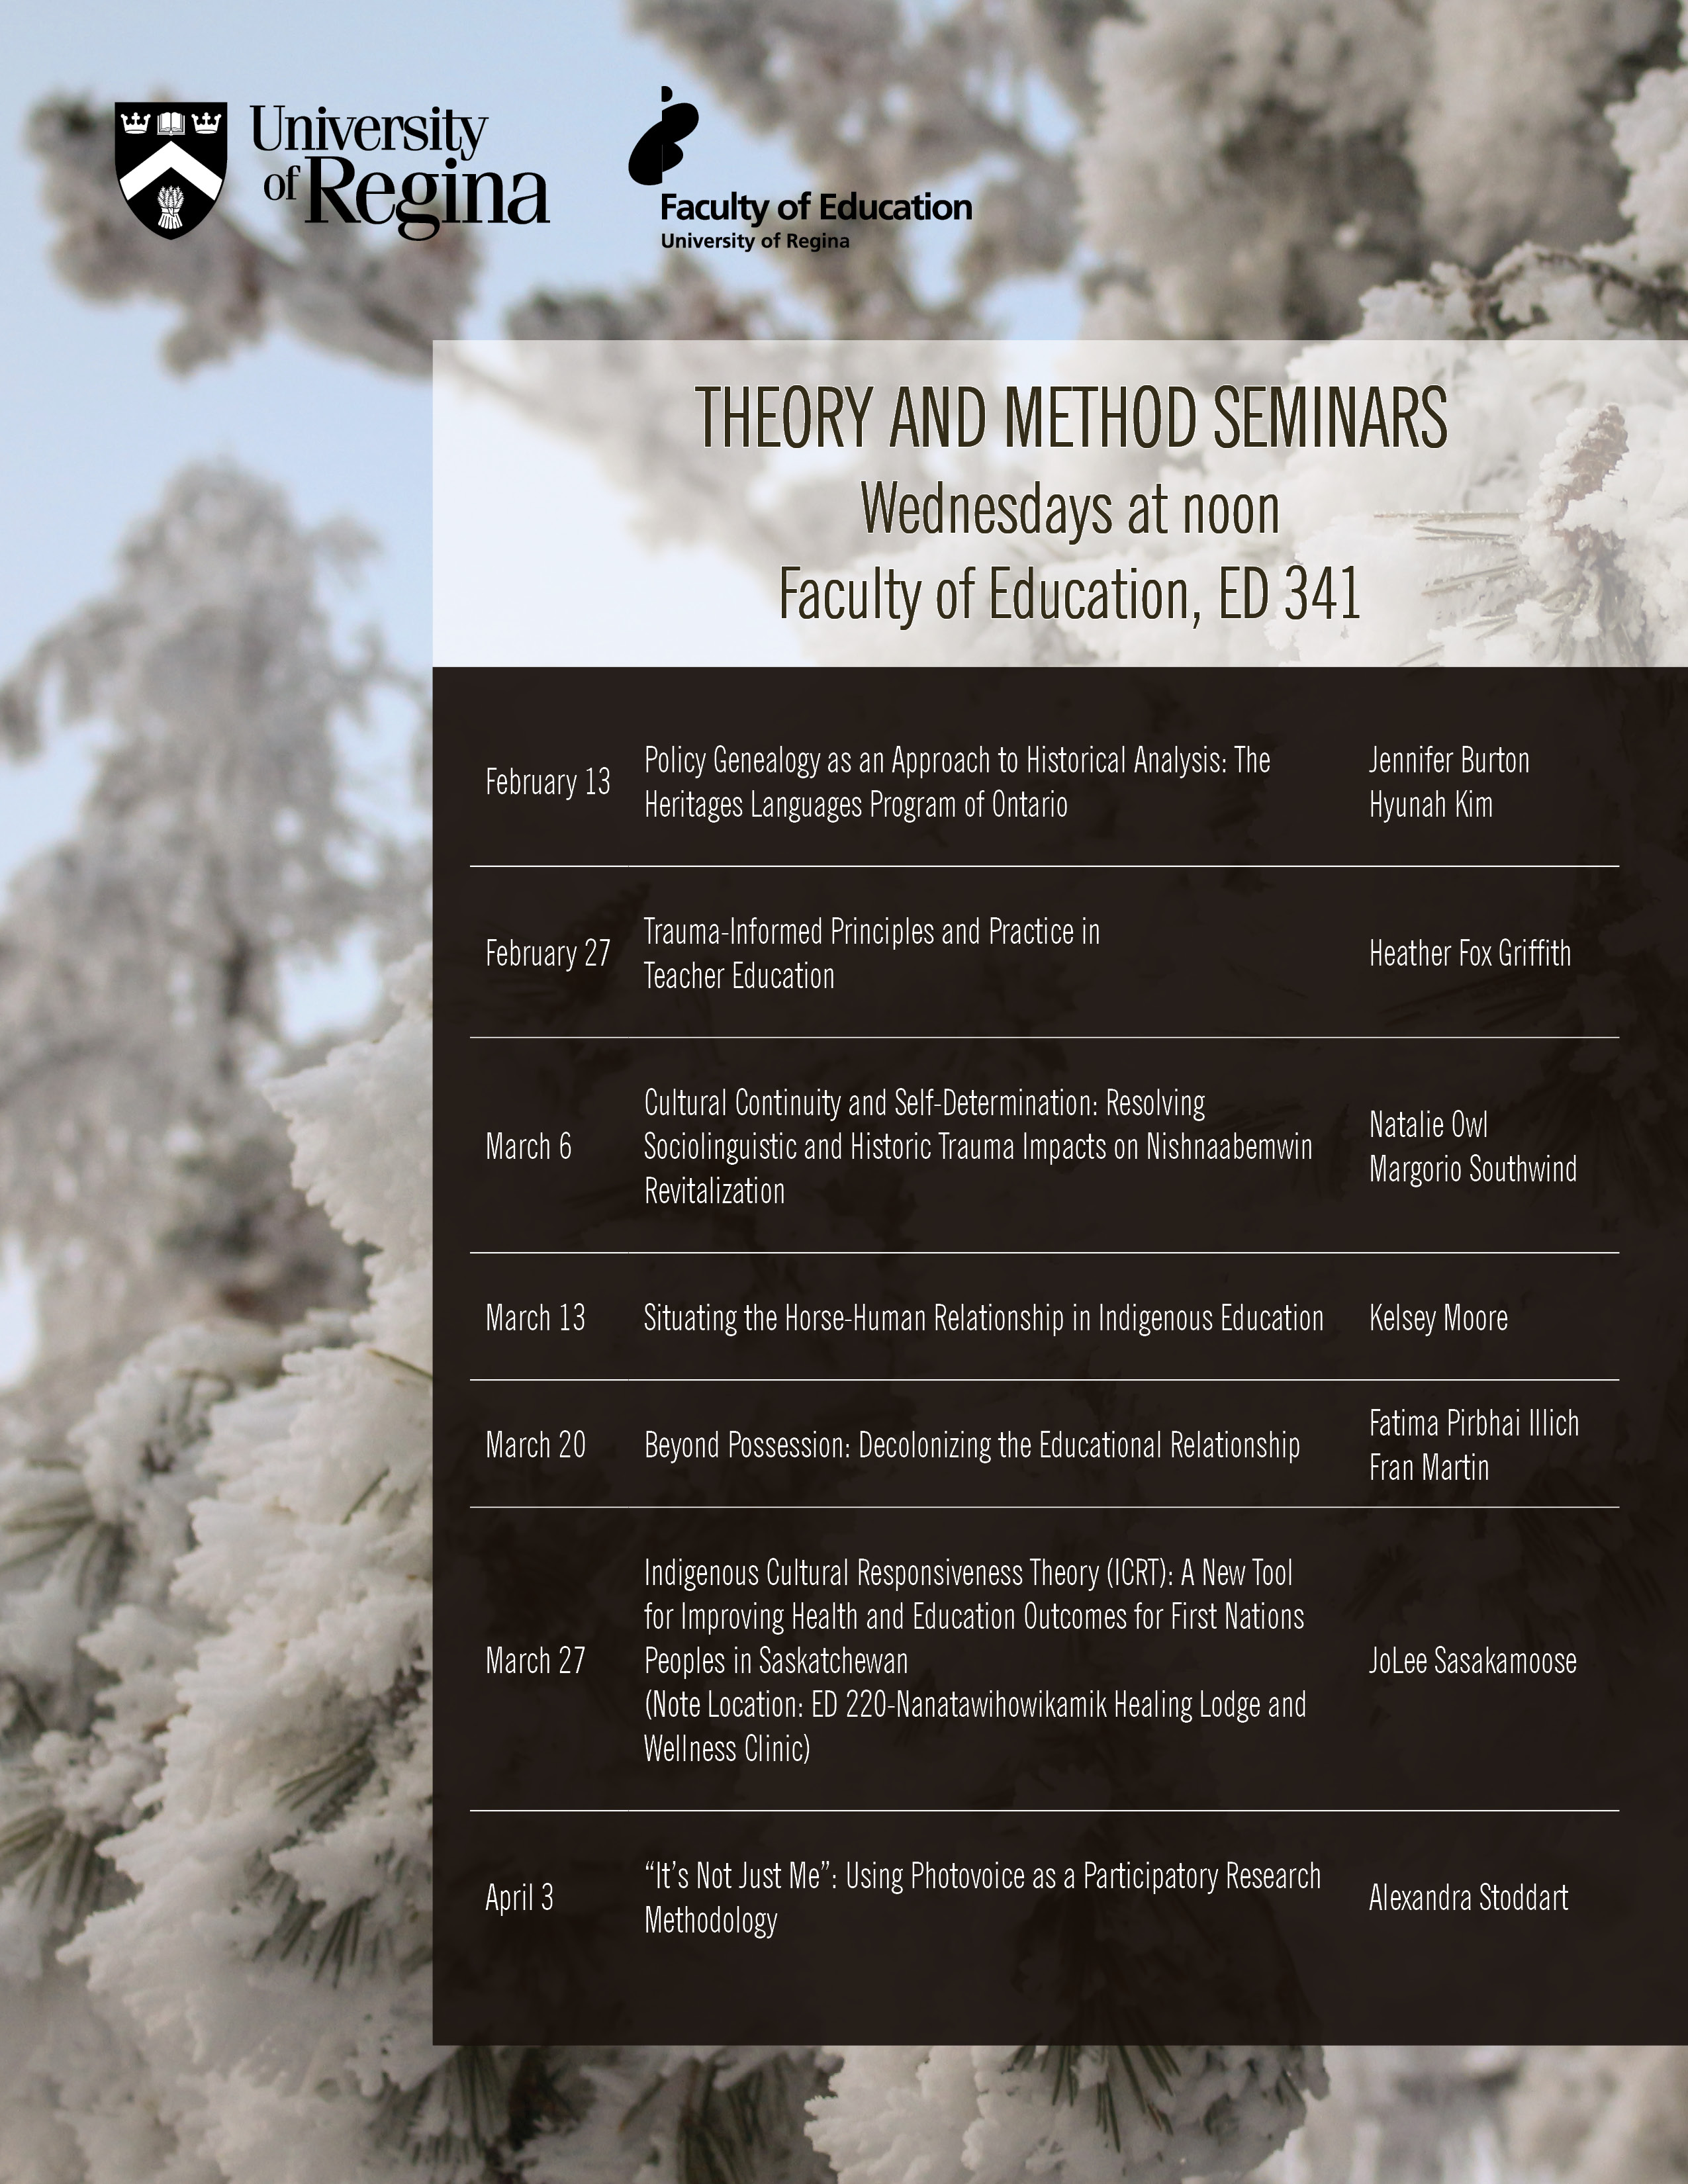 Winter schedule for the Theory and Method Seminar